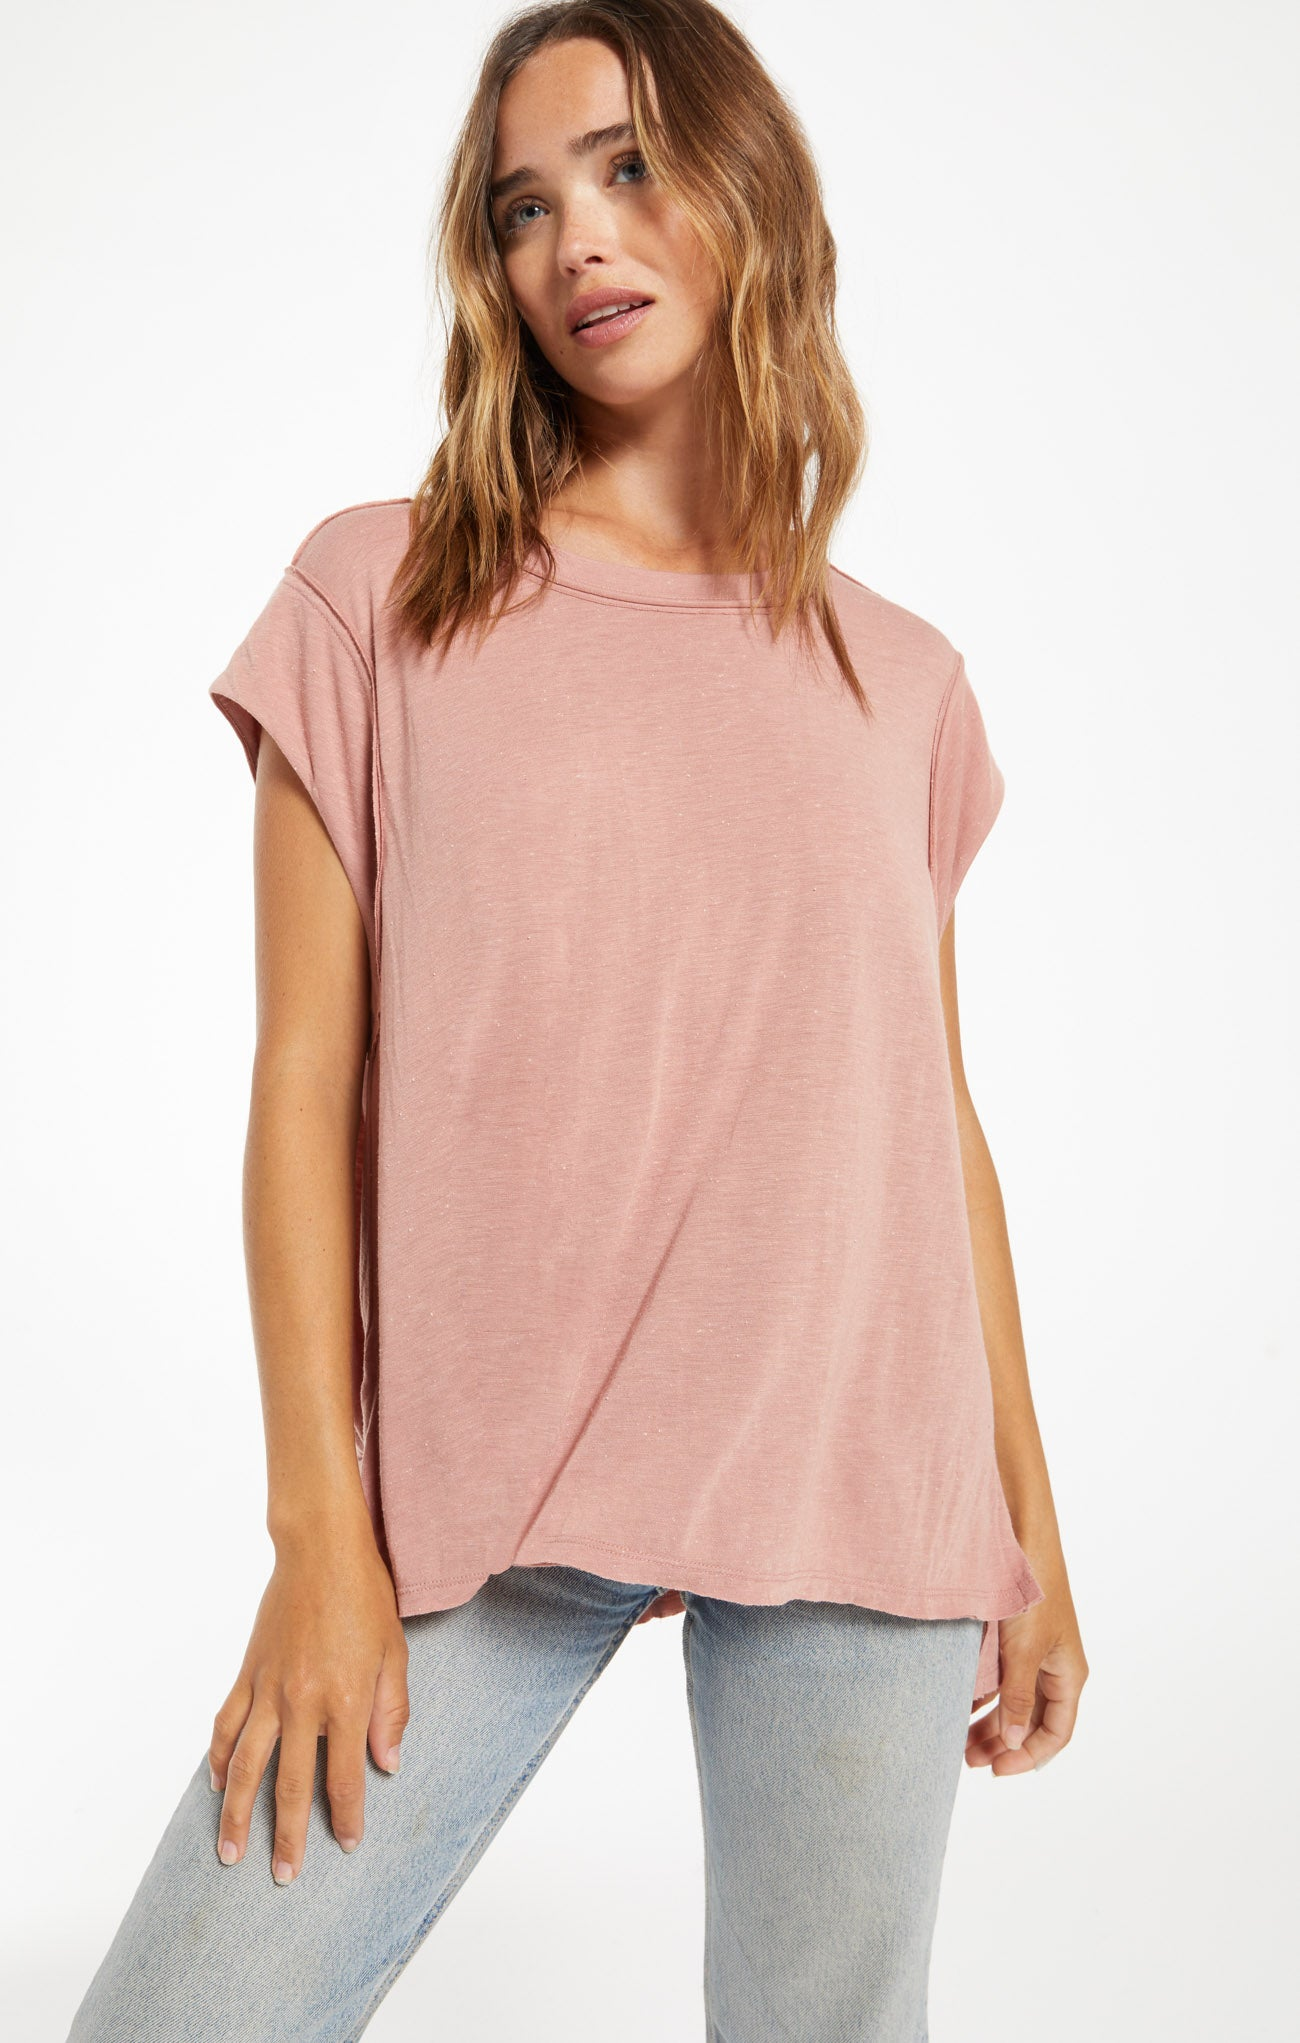 Tops Riley Speckle Tee Wild Rose